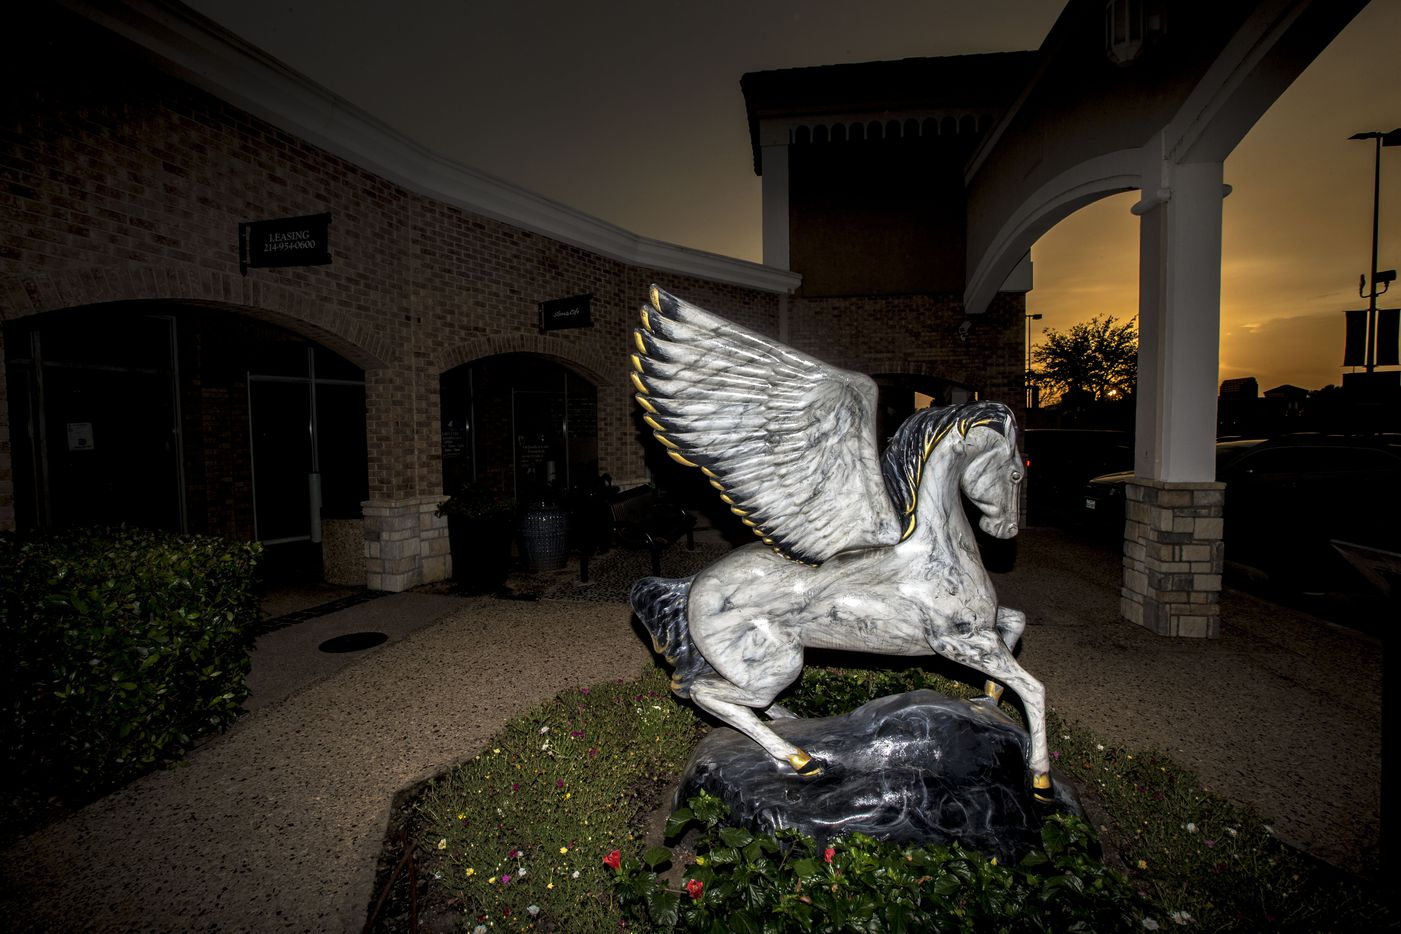 The 'Classicus' pegasus statue at the Preston Valley Shopping Center in Dallas on July 11, 2018. Artist Hank Black painted 58 popular Dallas images into the marble.